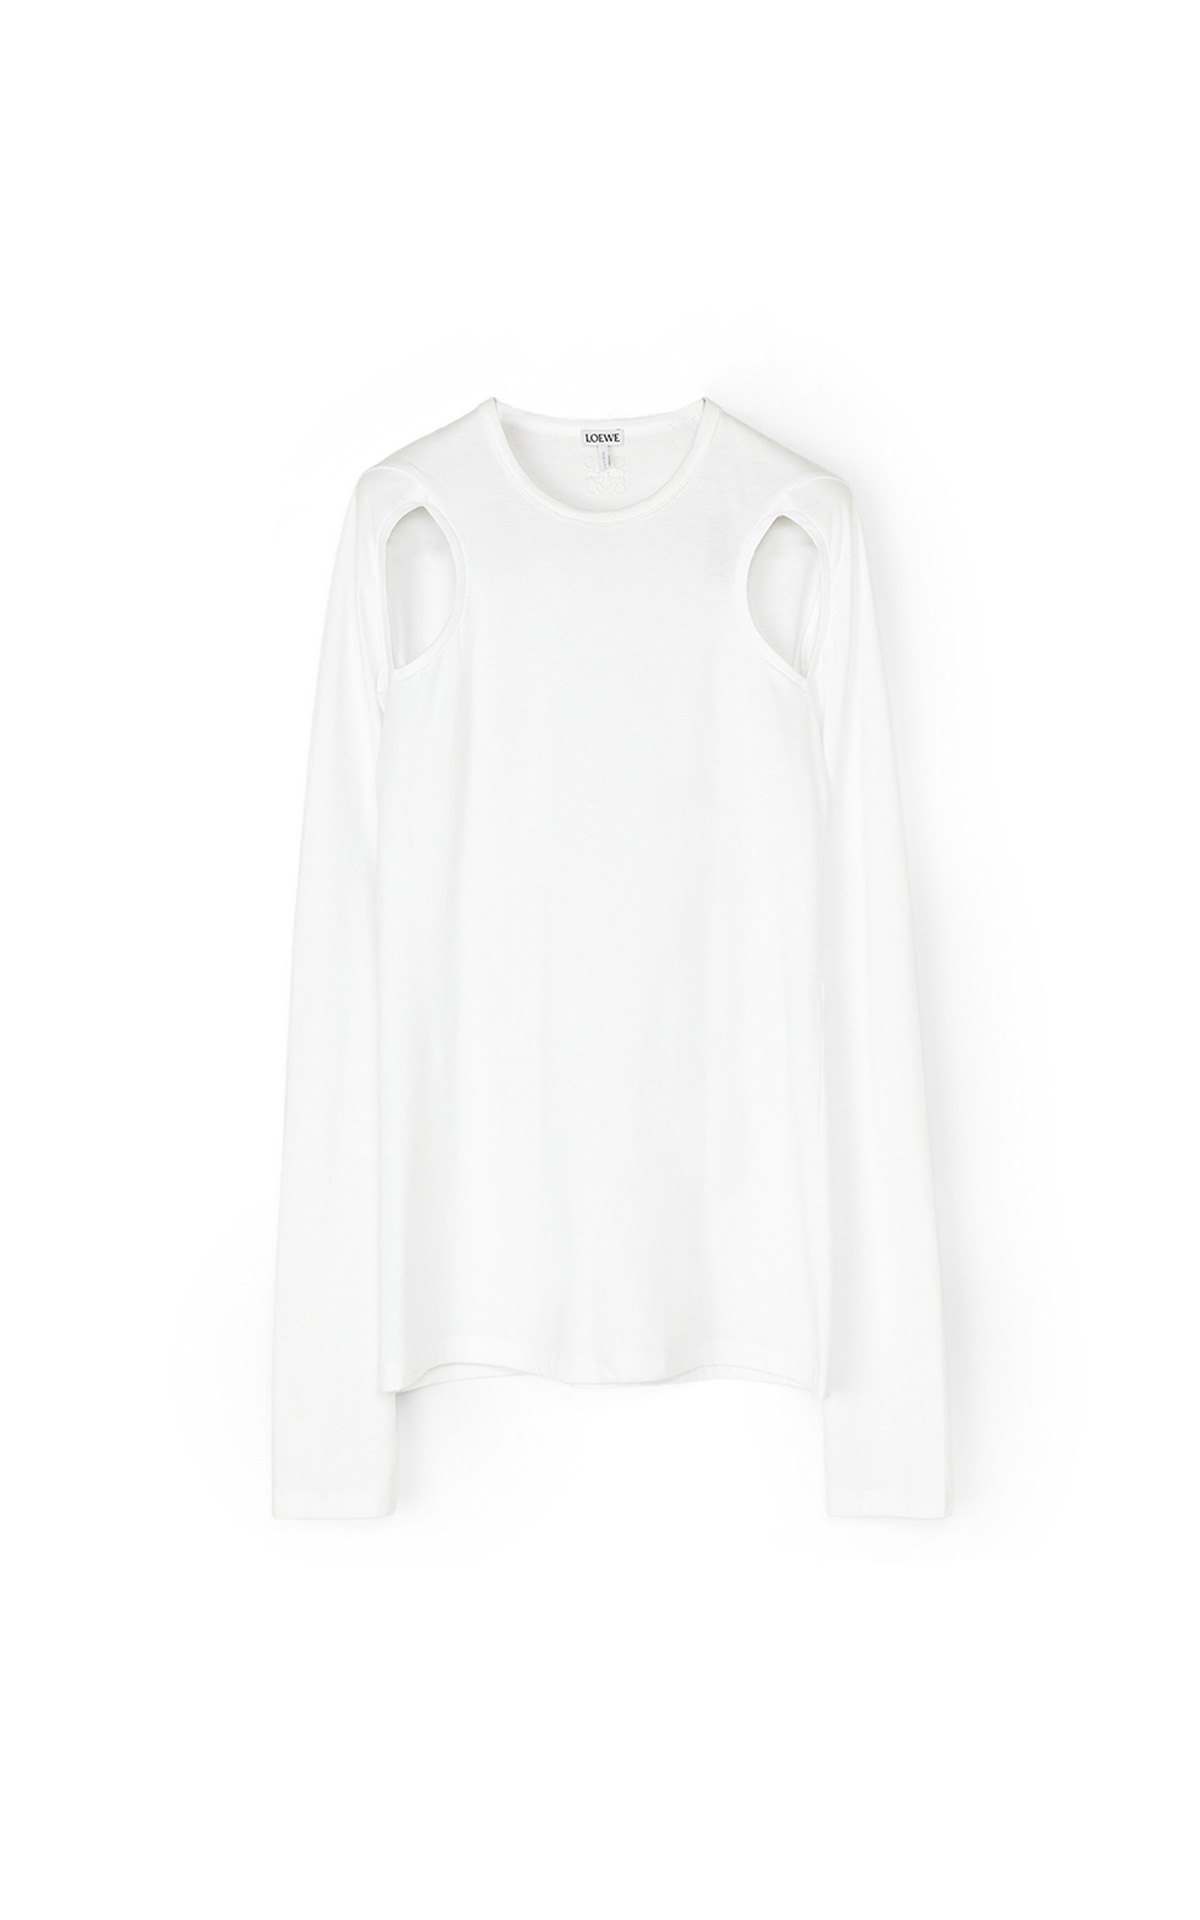 Loewe Women's cut out long sleeve shirt at The Bicester Village Shopping Collection